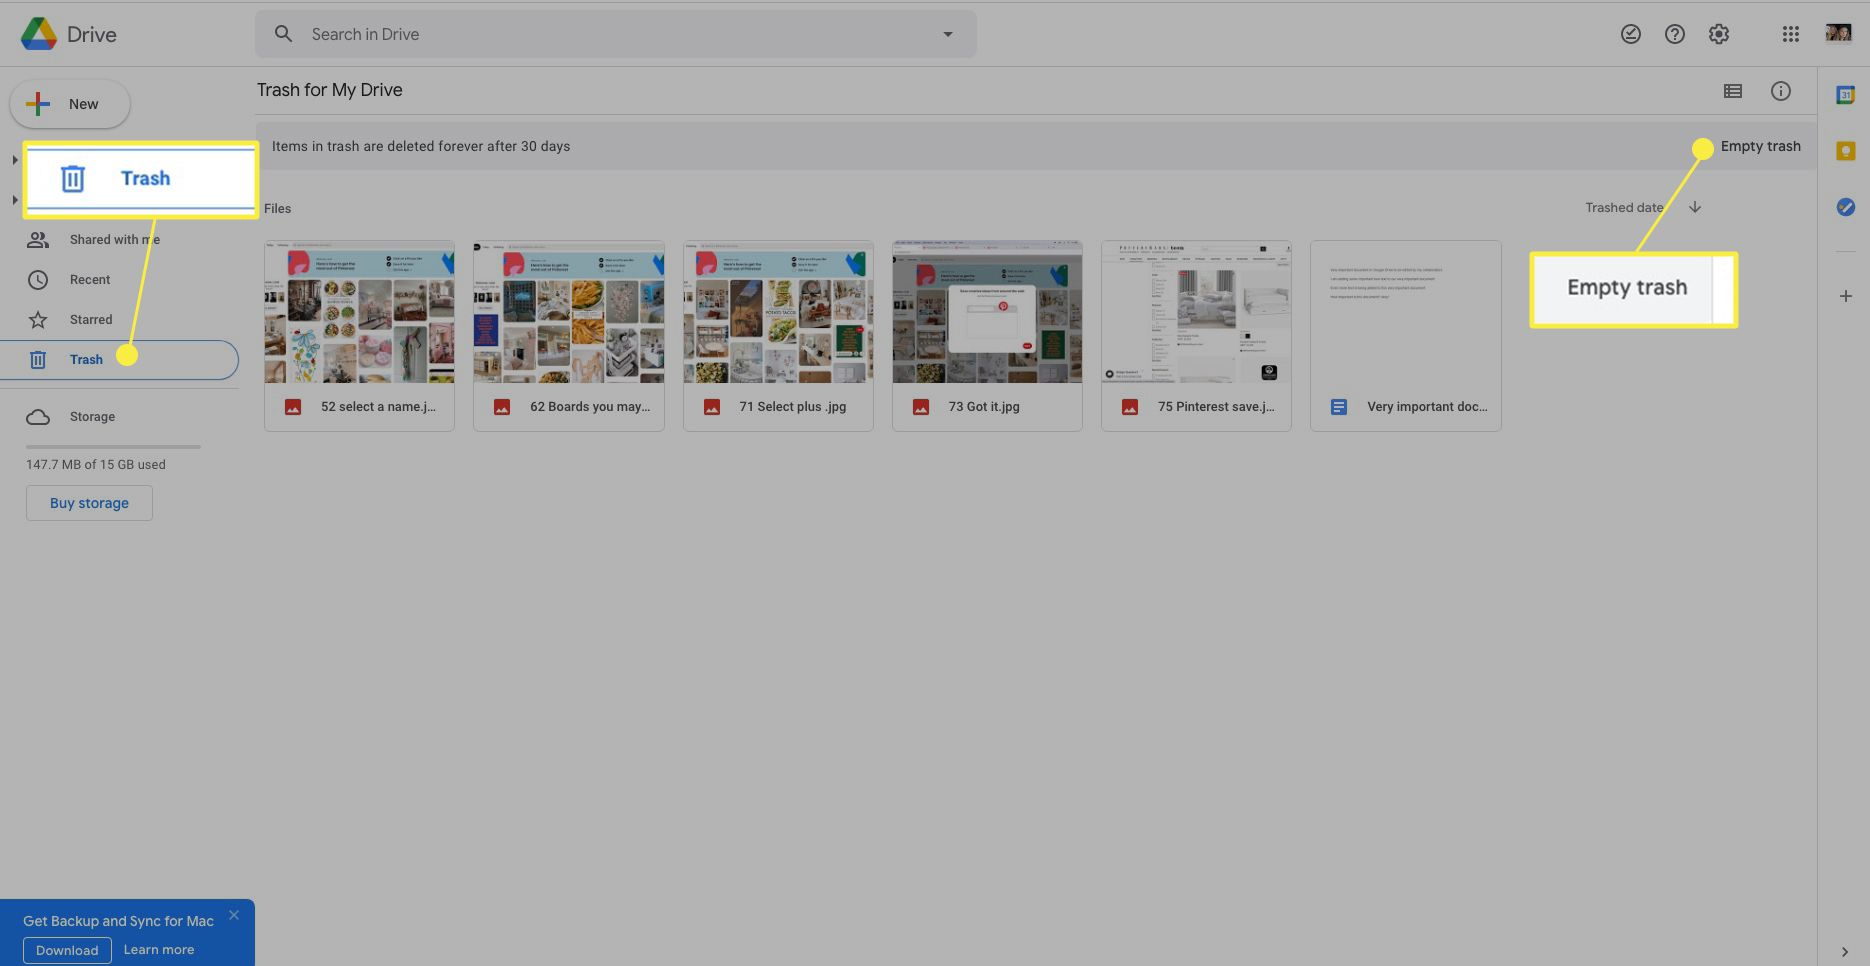 Google Drive with Trash and Empty Trash highlighted